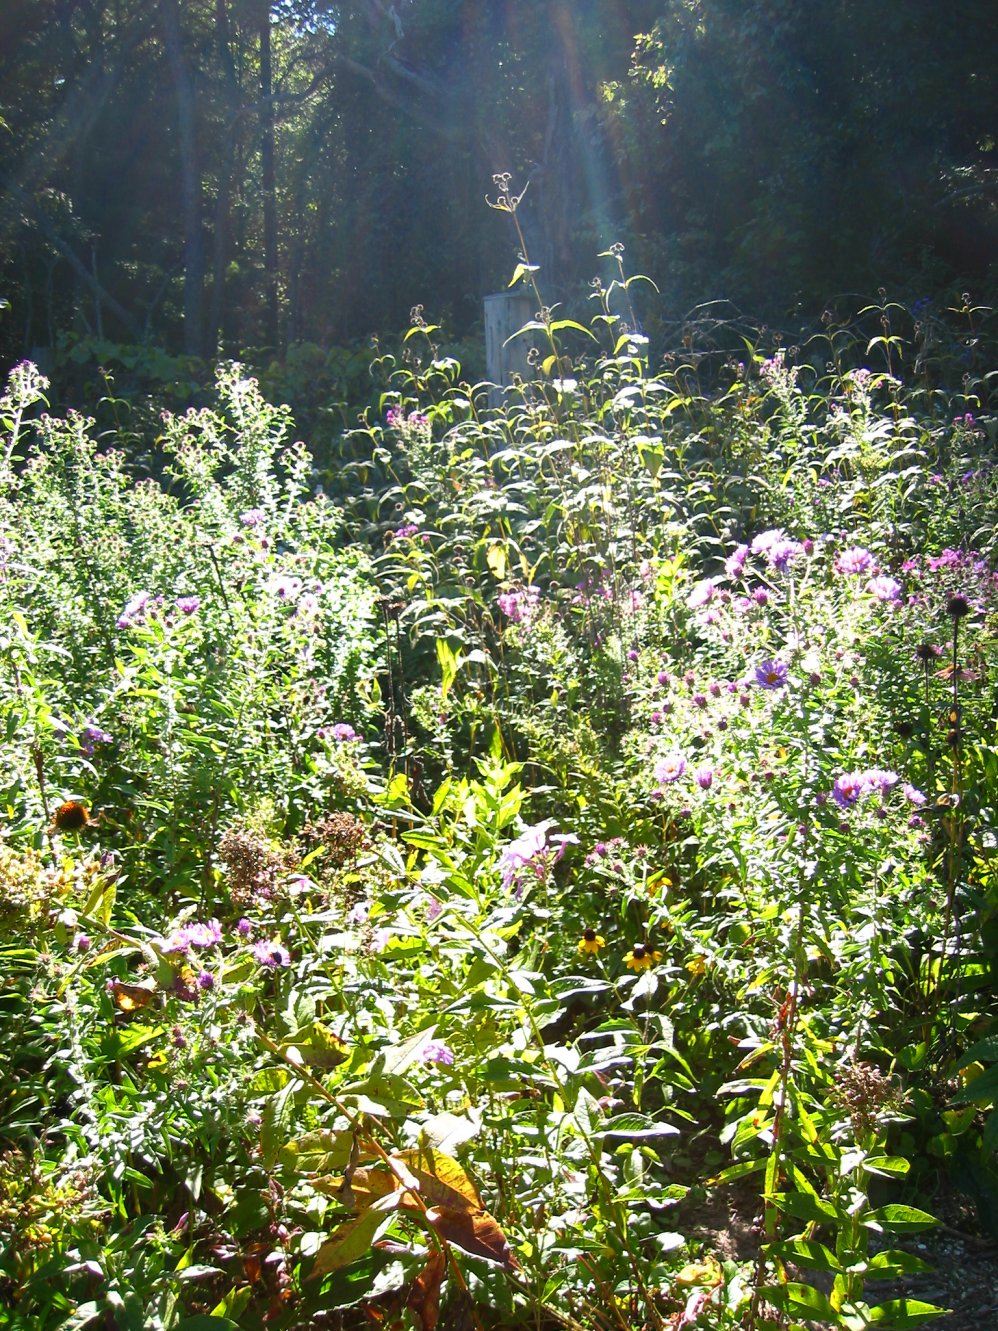 Lapham Peak Butterfly Garden - some manmade nature - sept 2007....soul-amp.com